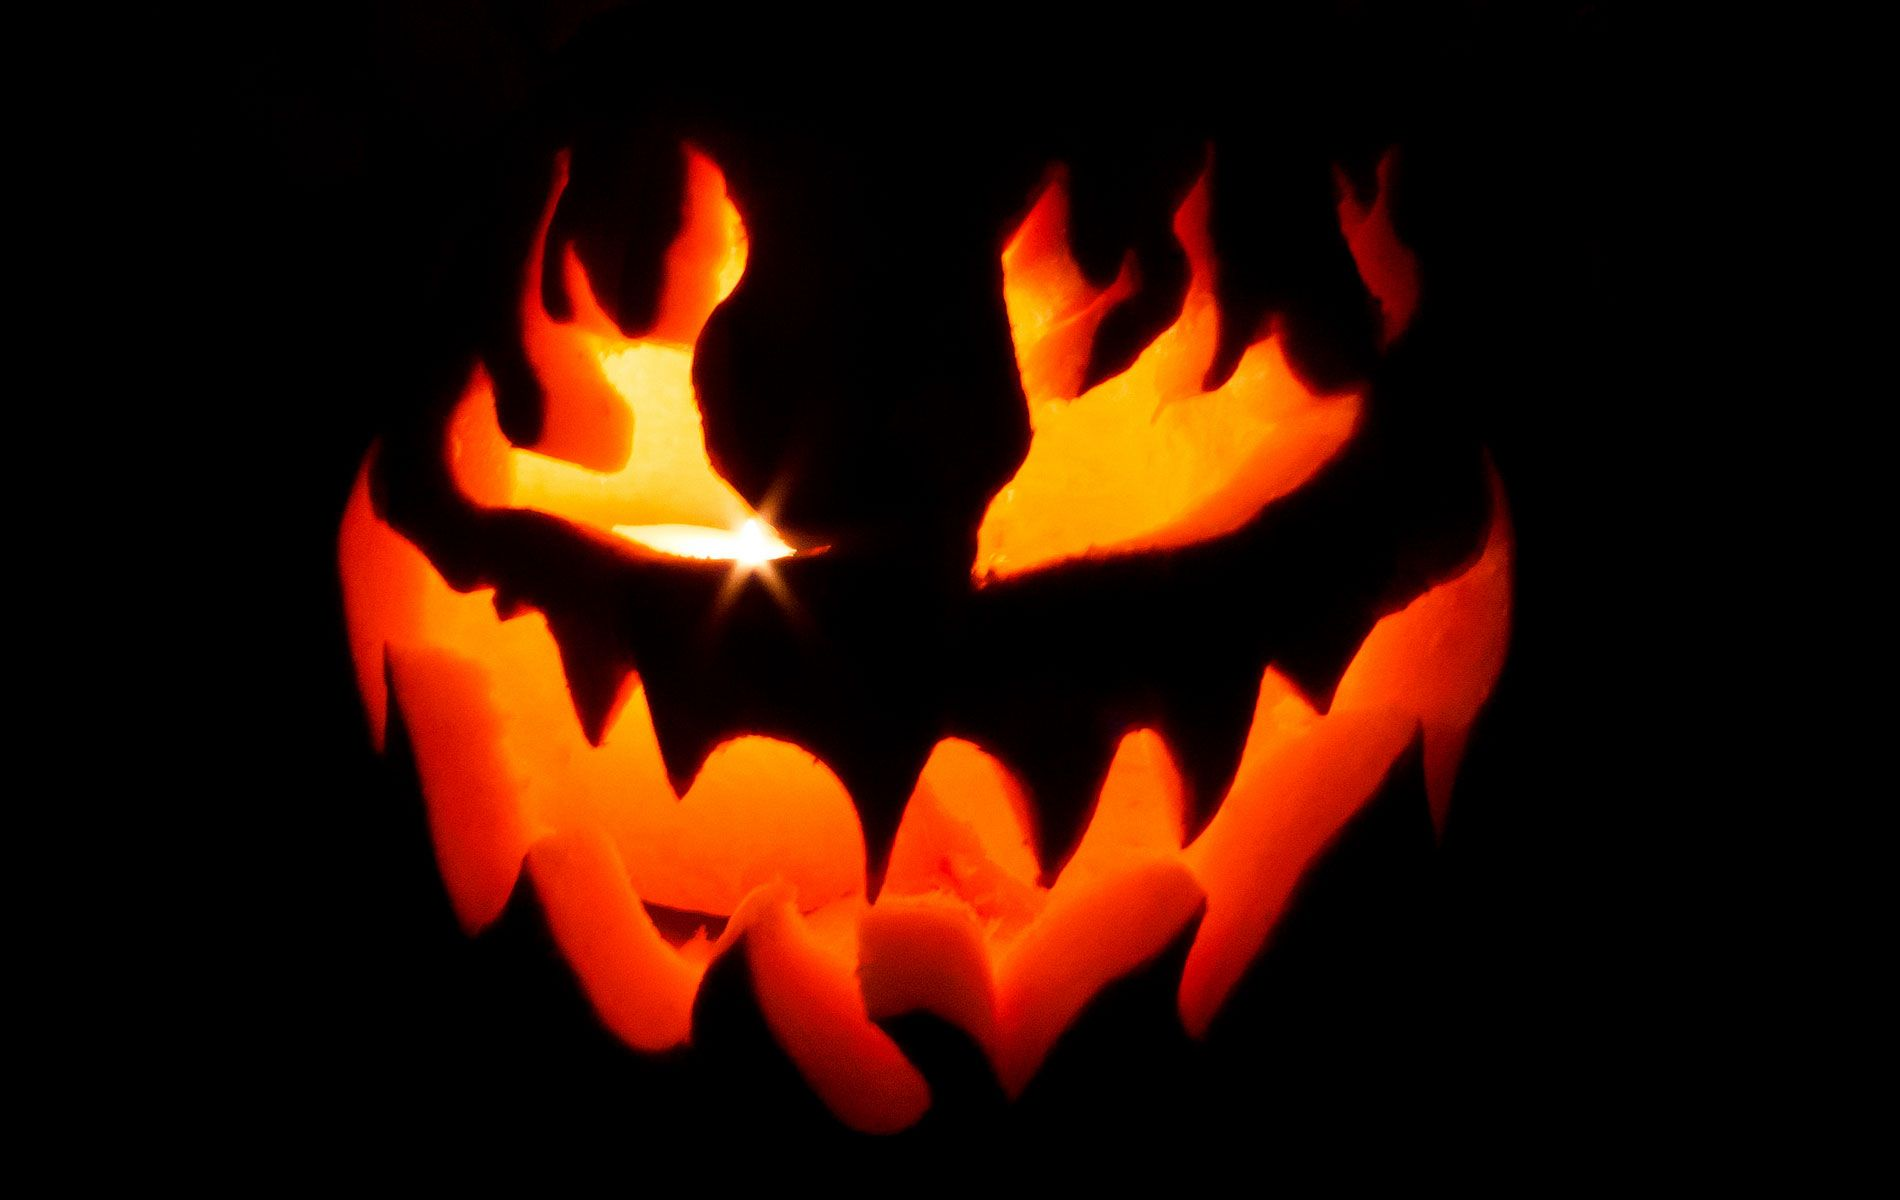 Scary Pumpkin Wallpapers Top Free Scary Pumpkin Backgrounds Wallpaperaccess